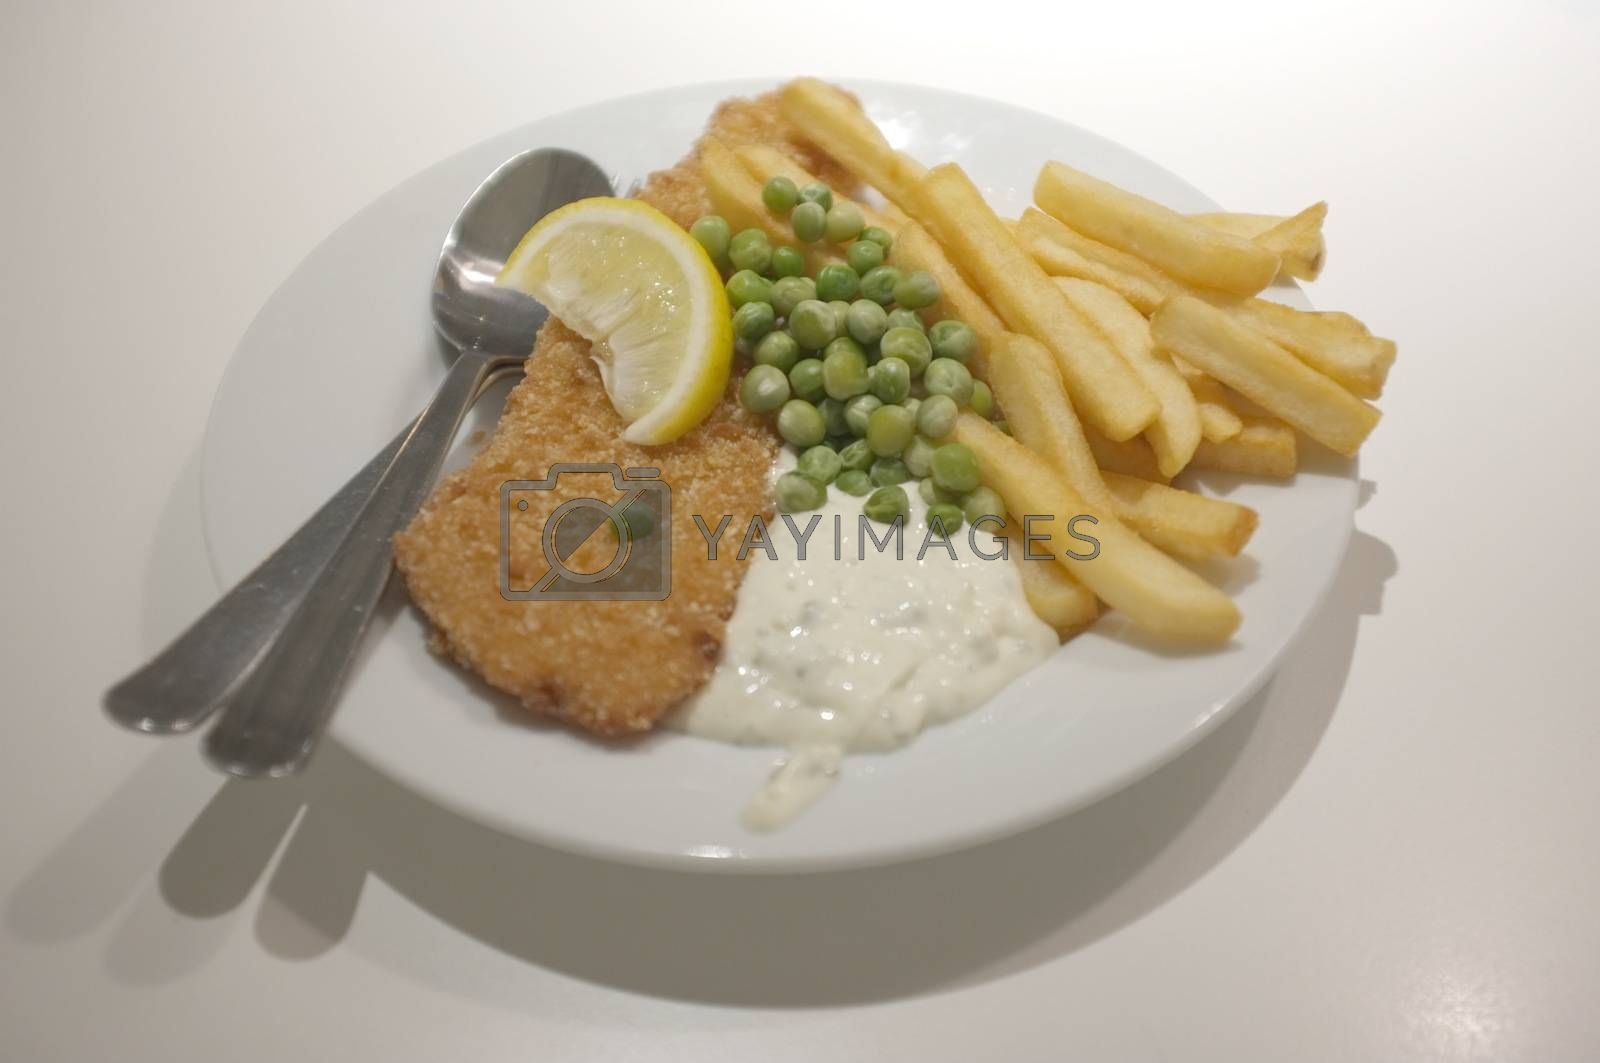 Fish and chips on a dish .